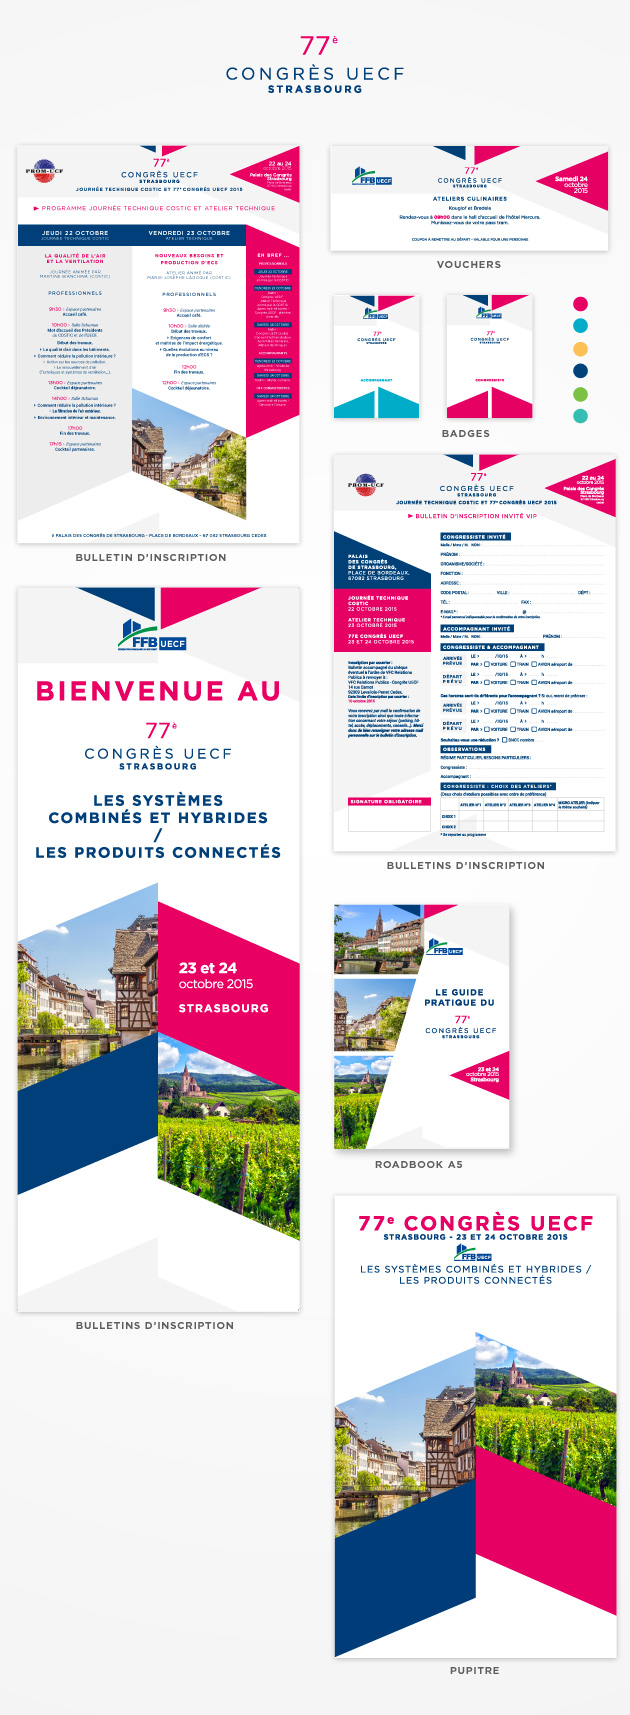 Congrès UECF 2015 - Supports de communication